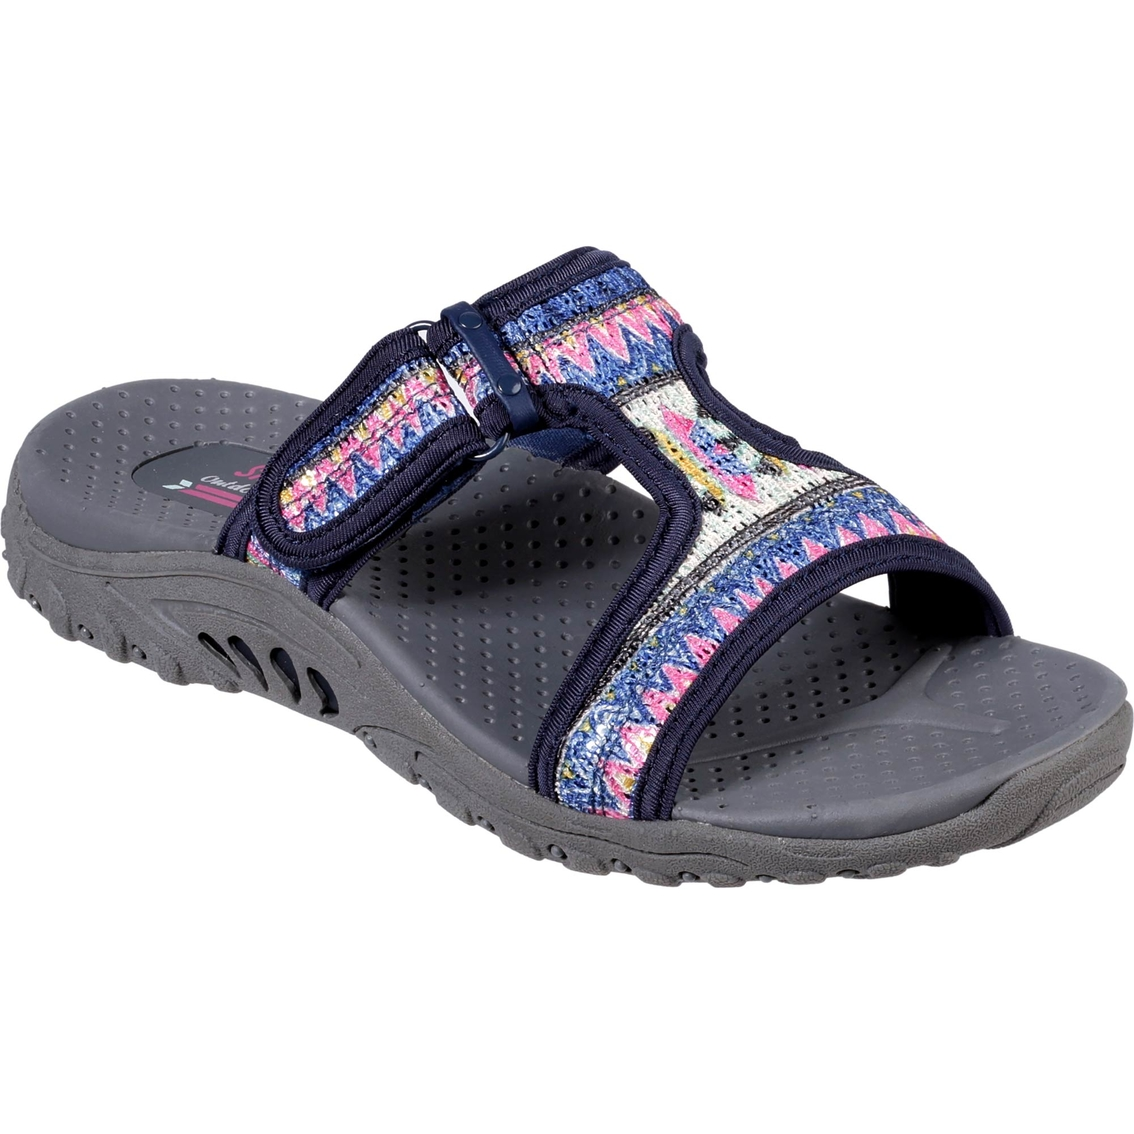 skechers slippers womens shoes